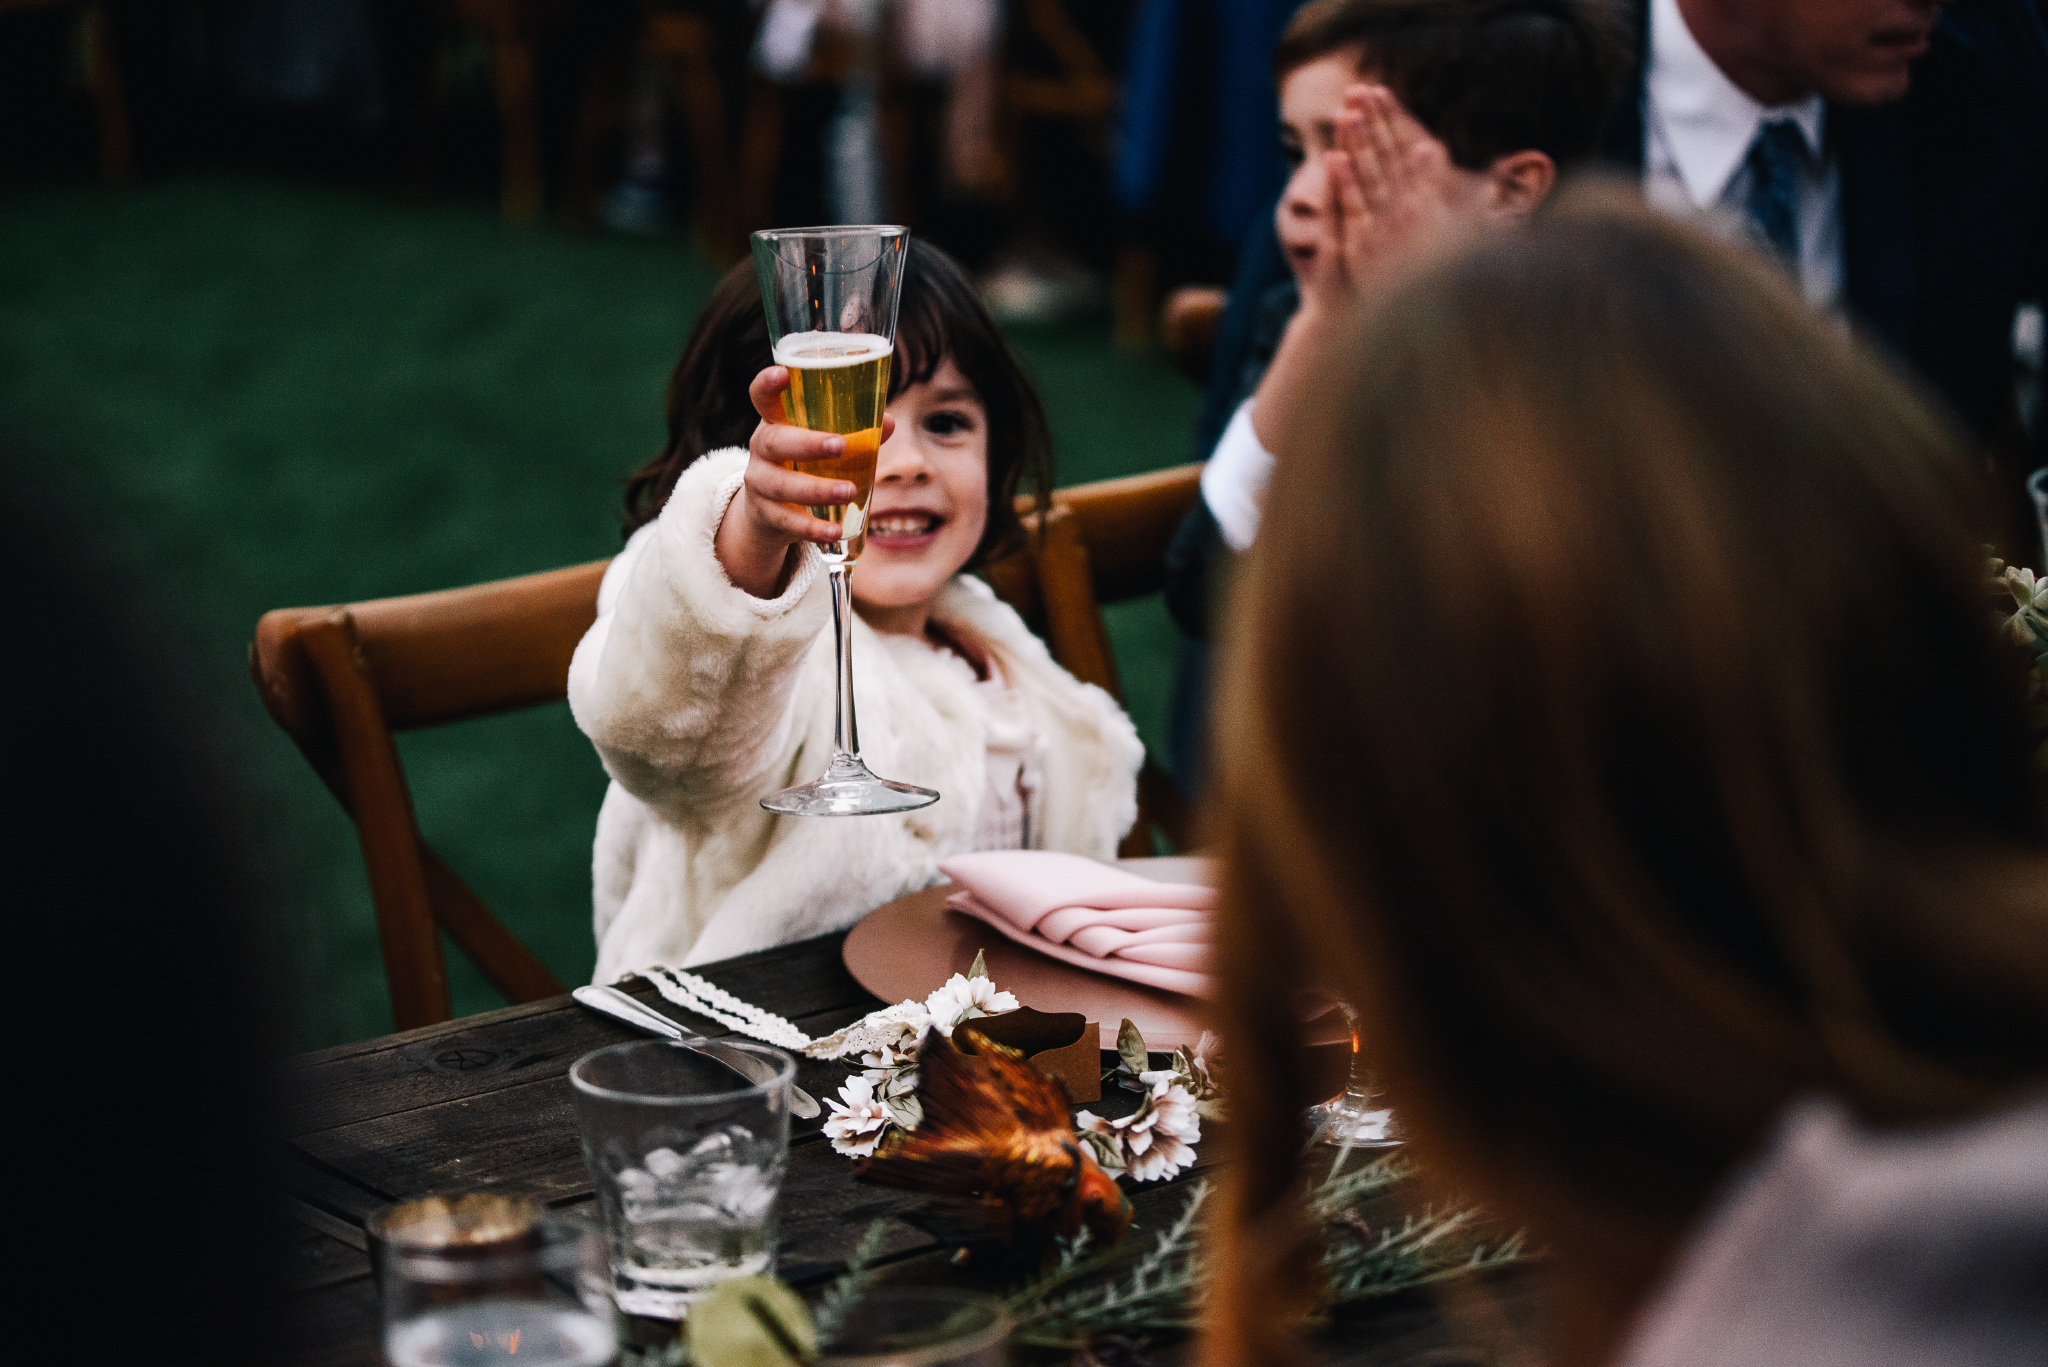 san diego wedding   photographer | child raising a glass on dinner table